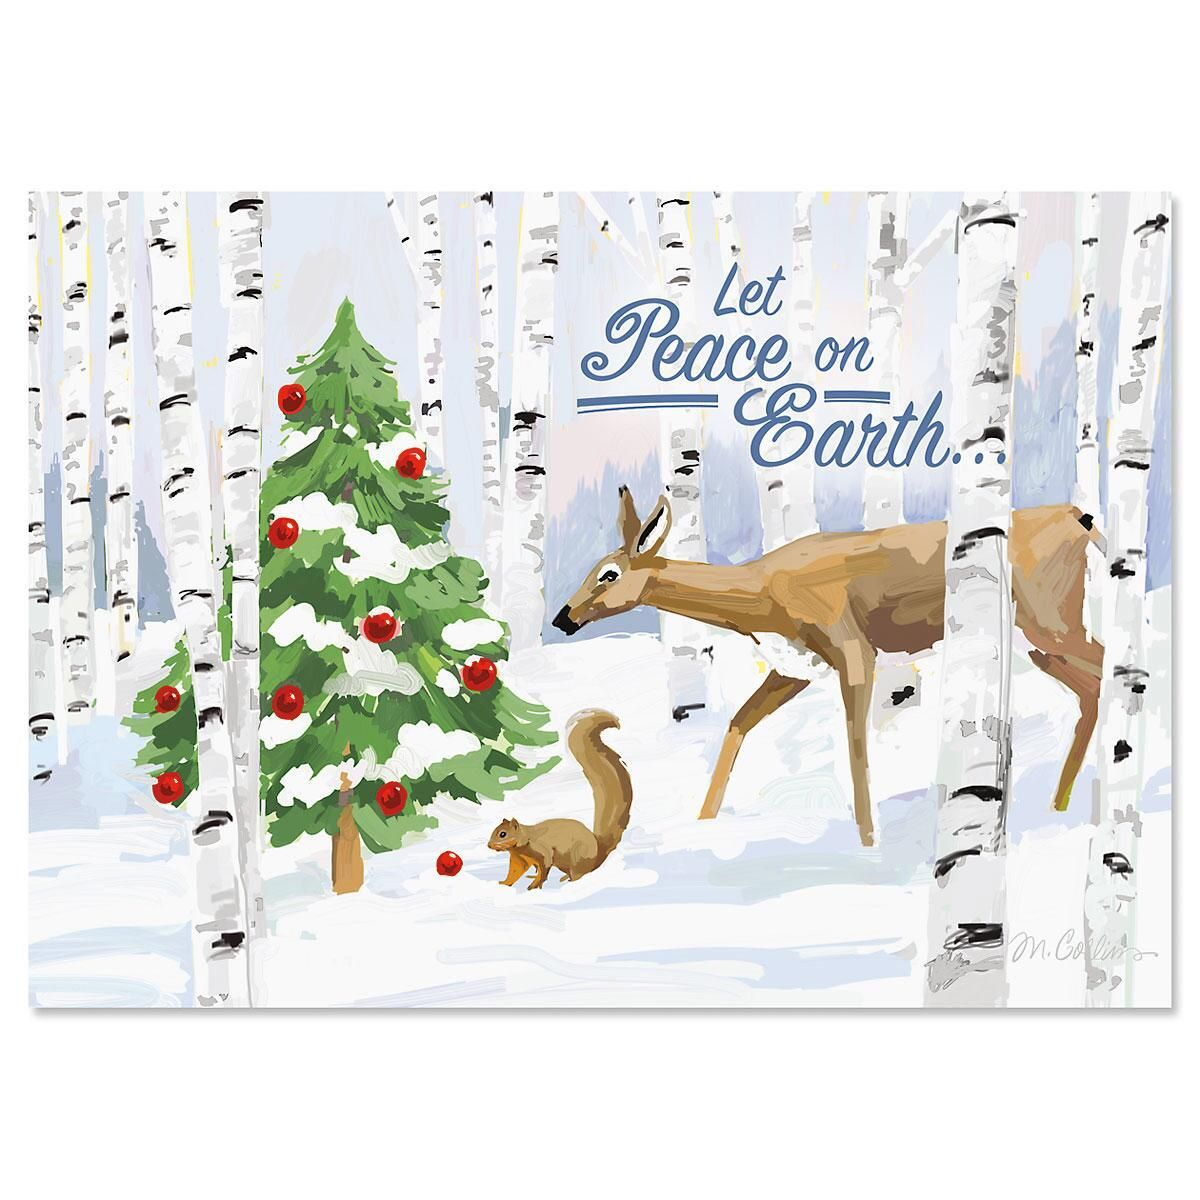 forest curiosity nonpersonalized christmas cards current catalog - Current Christmas Cards